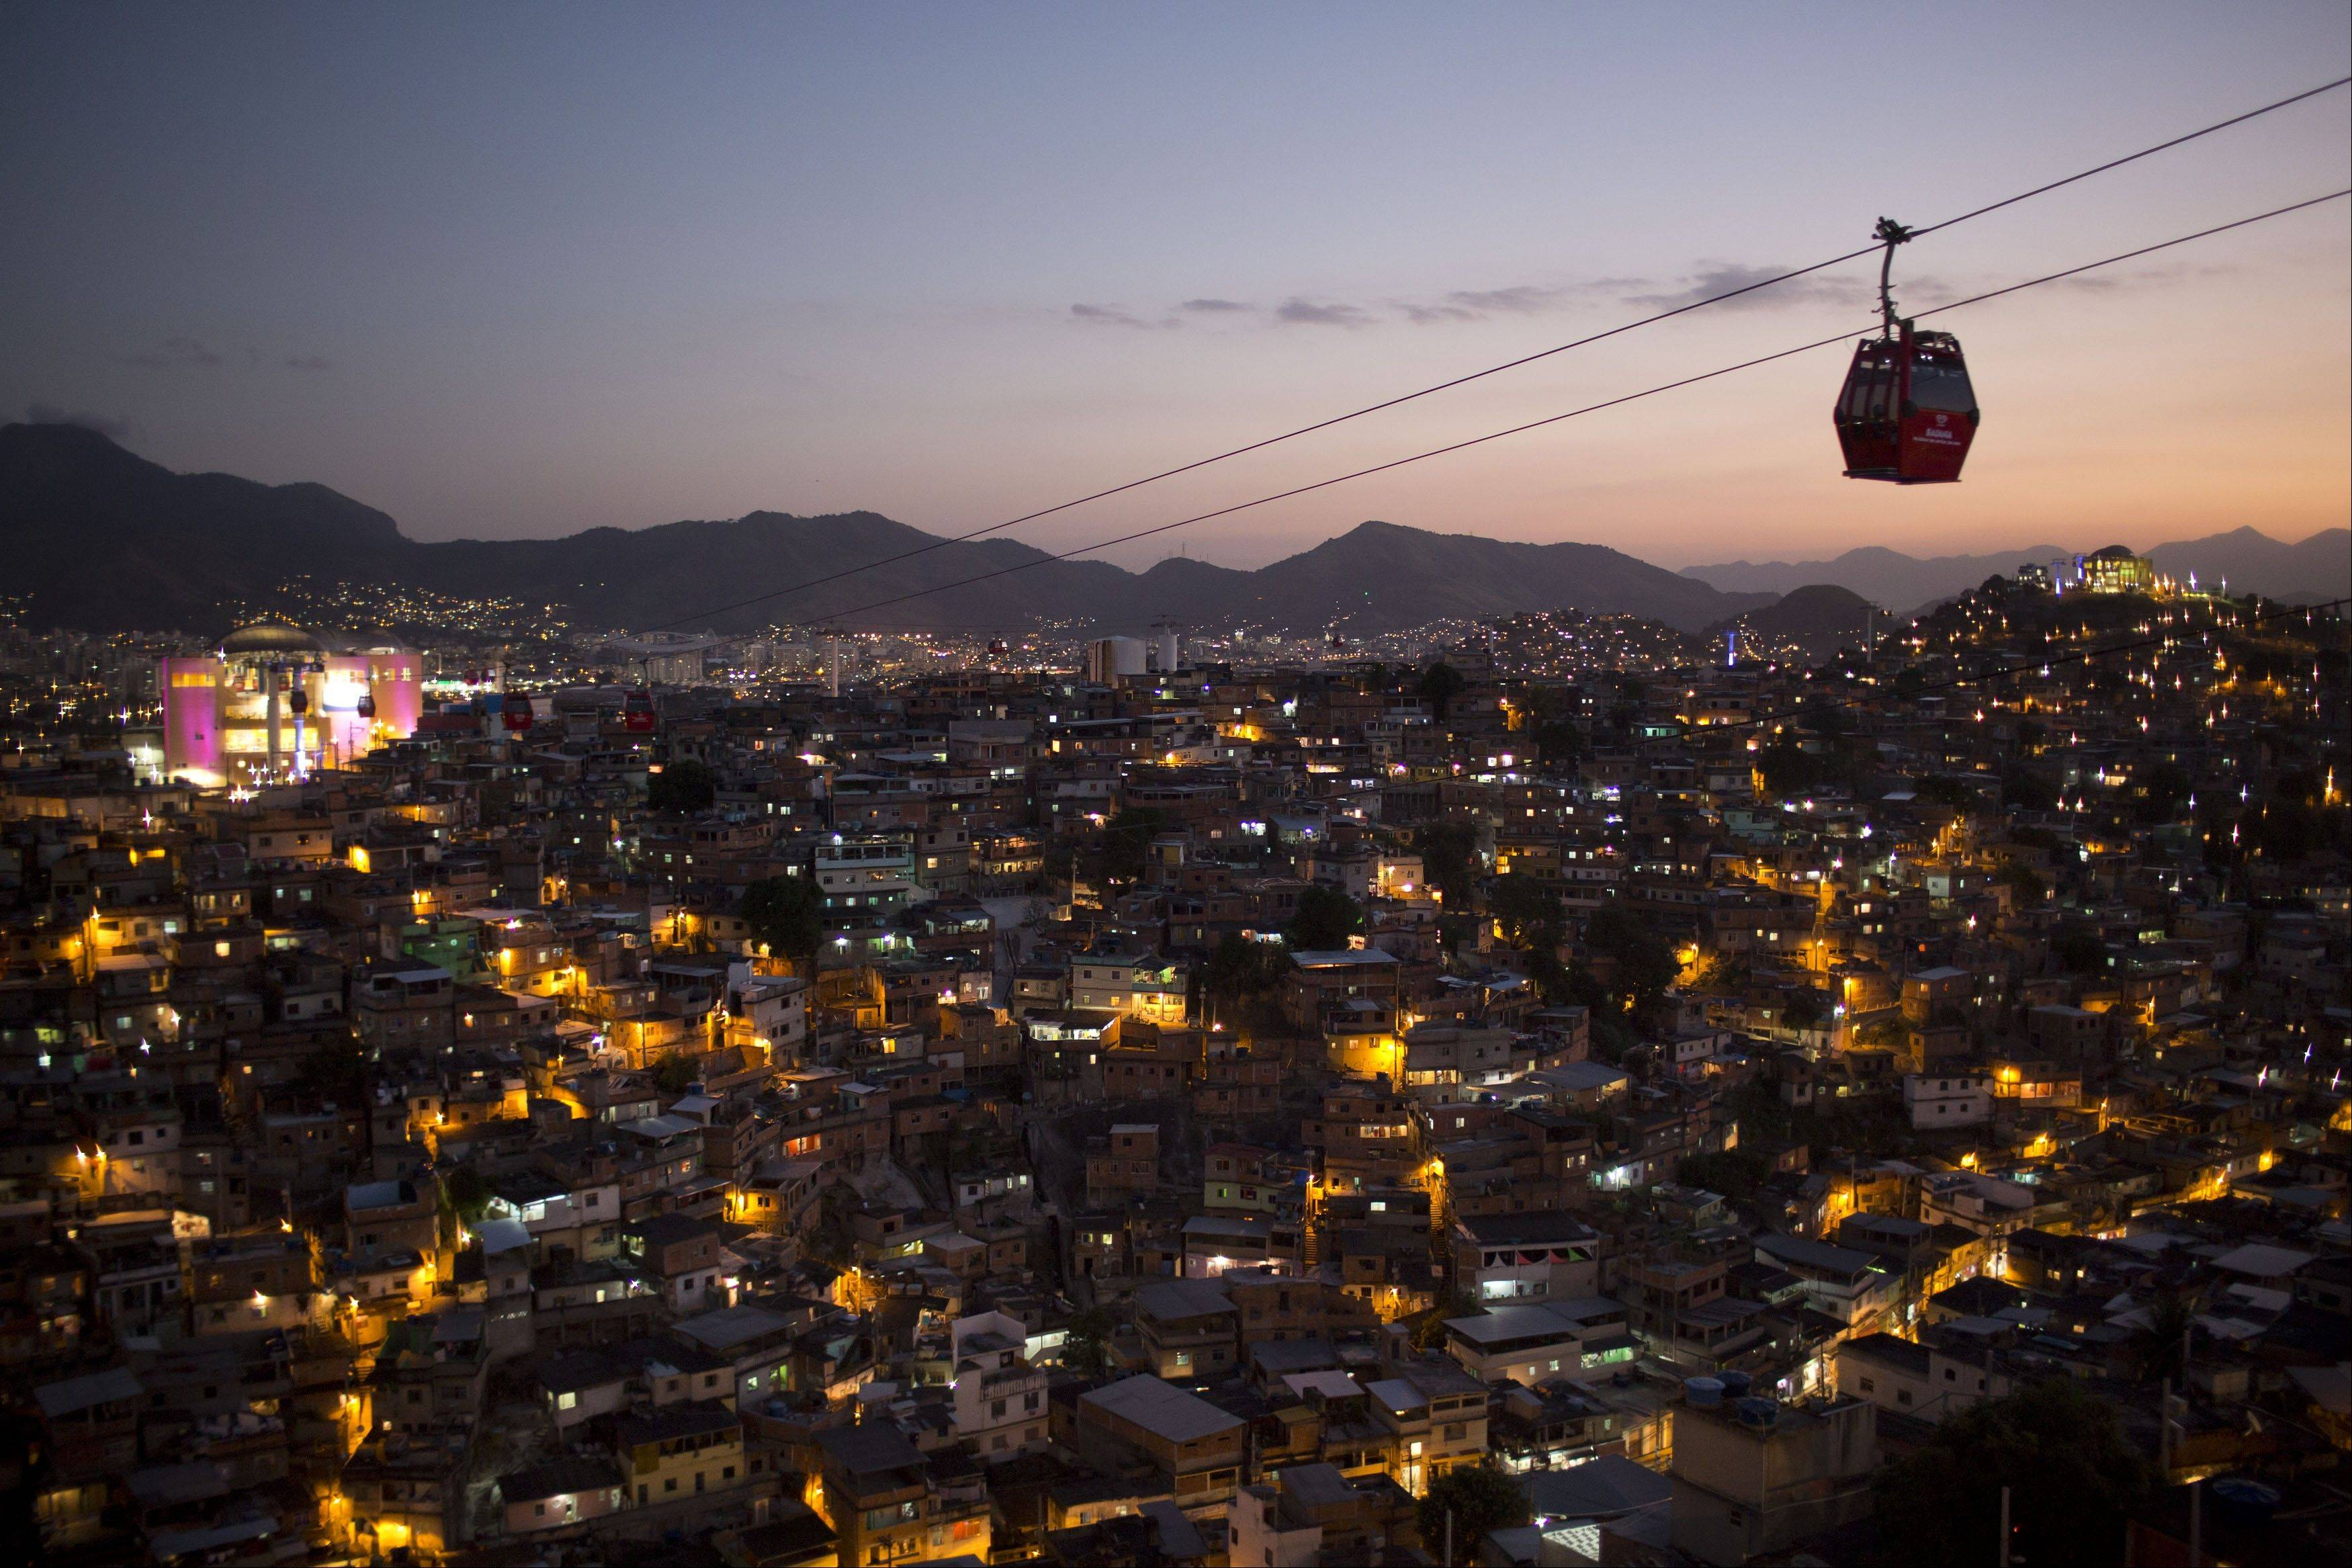 A cable-car system links six of its hilltops over the Complexo do Alemao shantytowns in Rio de Janeiro, Brazil.